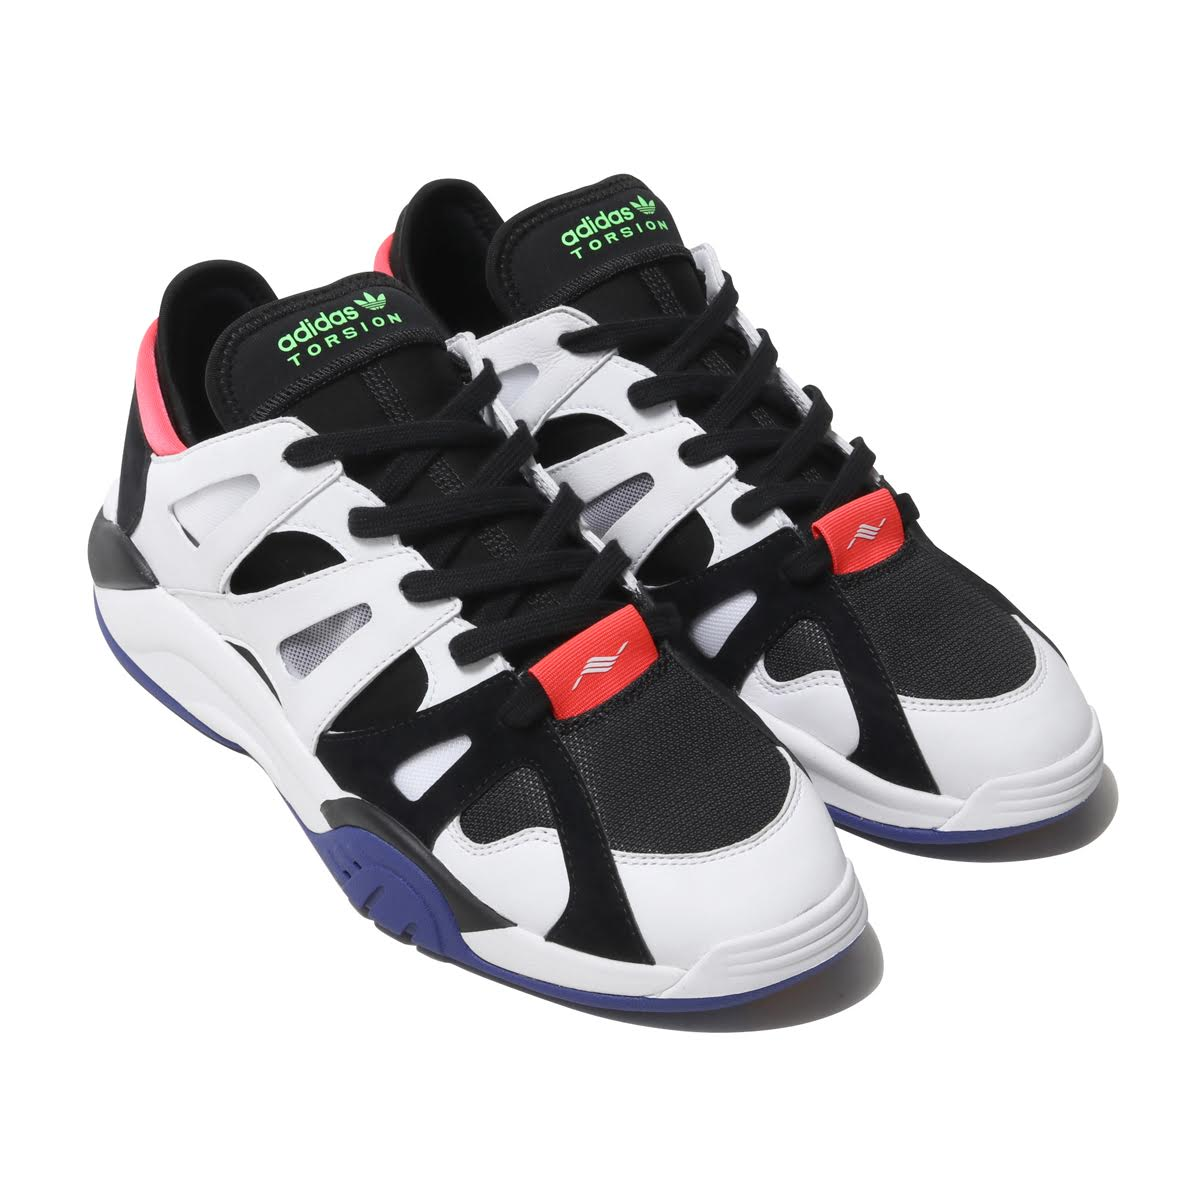 adidas torsion dimension